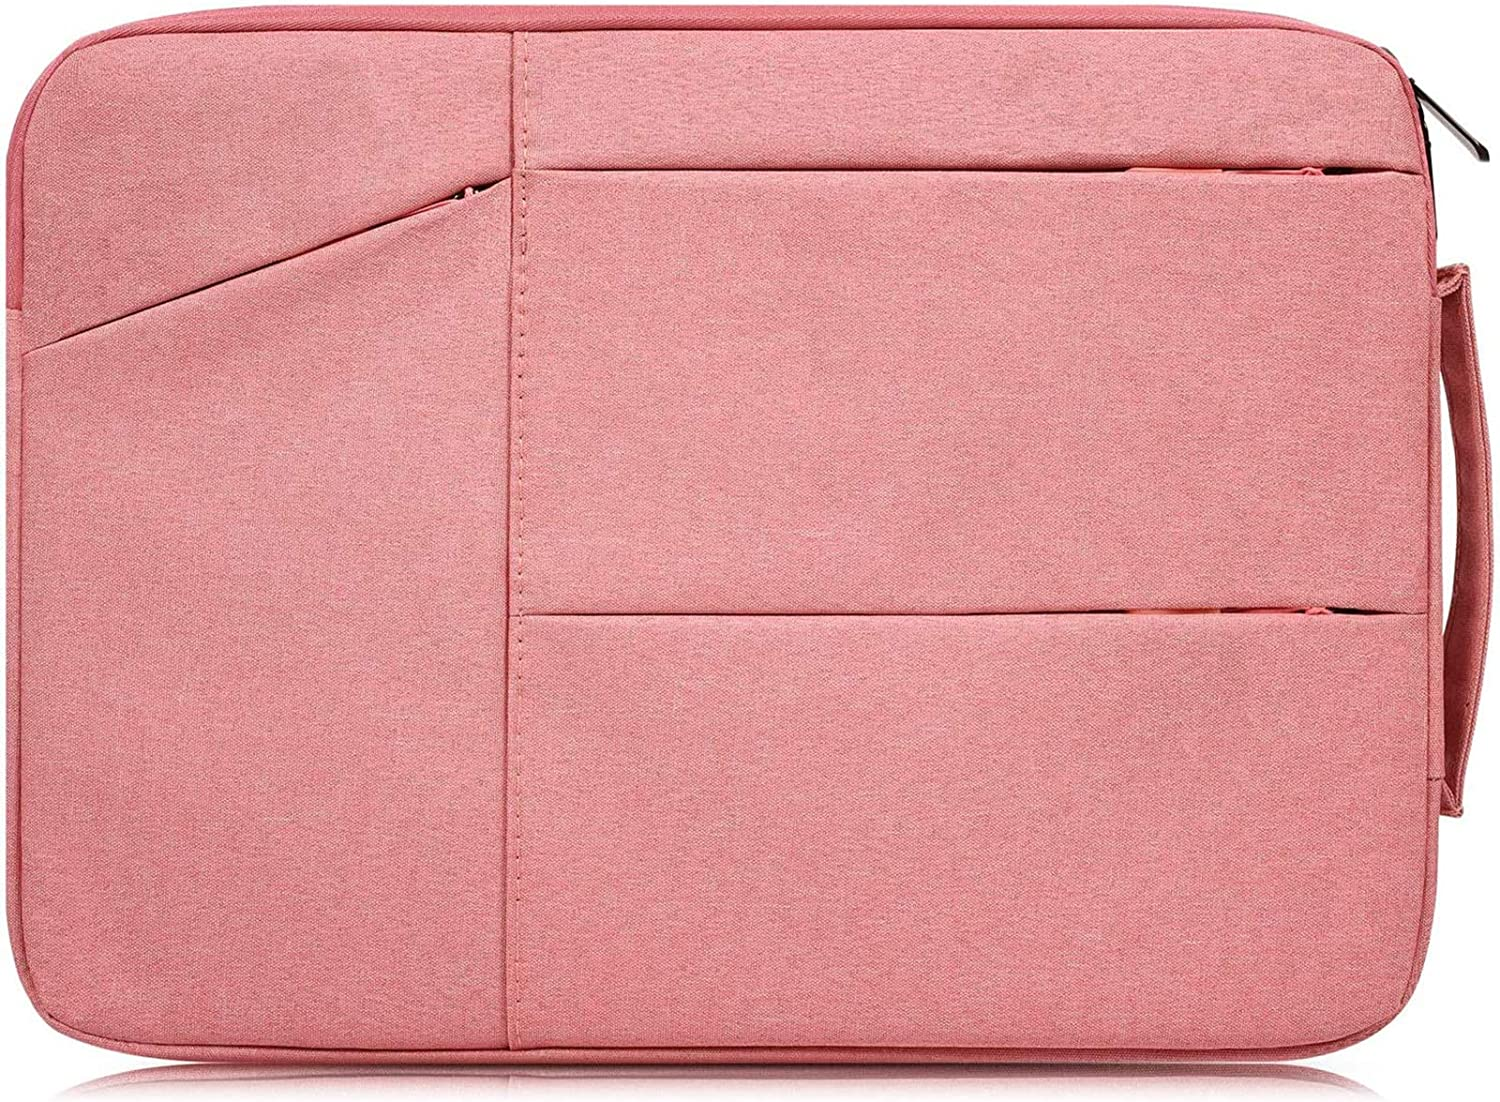 """11.6 Inch Waterproof Laptop Sleeve Case Compatible Acer Chromebook R 11/2018 Newest Acer R11 11.6"""",HP Stream 11,Dell Inspiron 11,Samsung Chromebook 3,Toshiba Asus Chromebook Notebook Tablet Bag,Pink"""